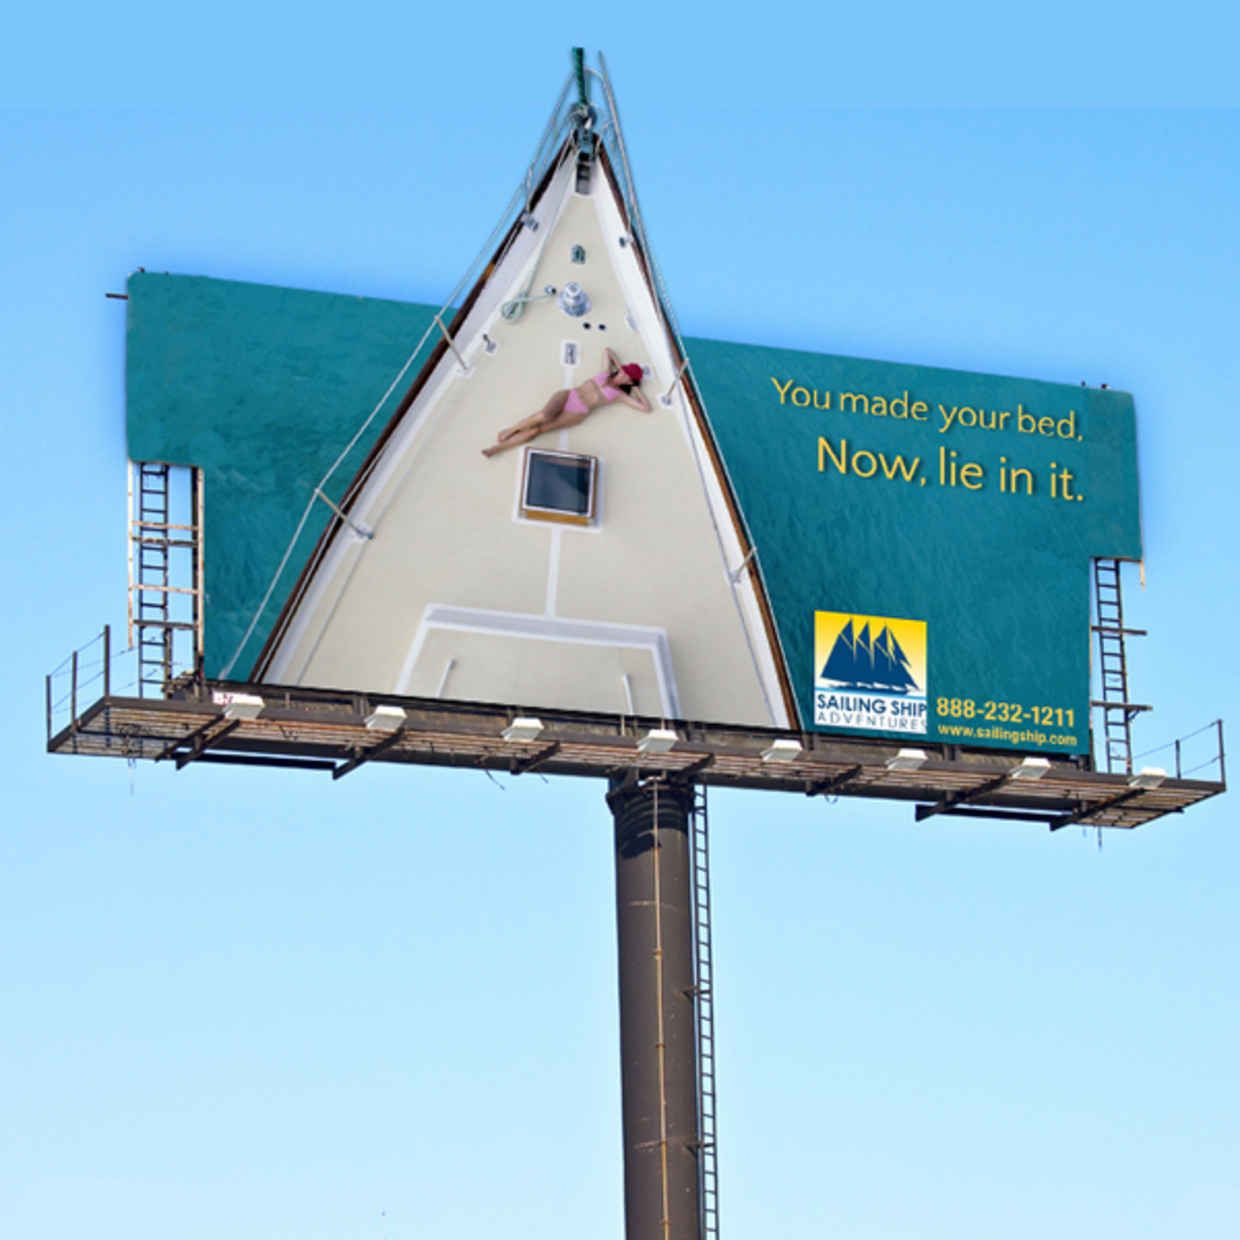 Creative Billboard Advertising Designs | Advertising design ...